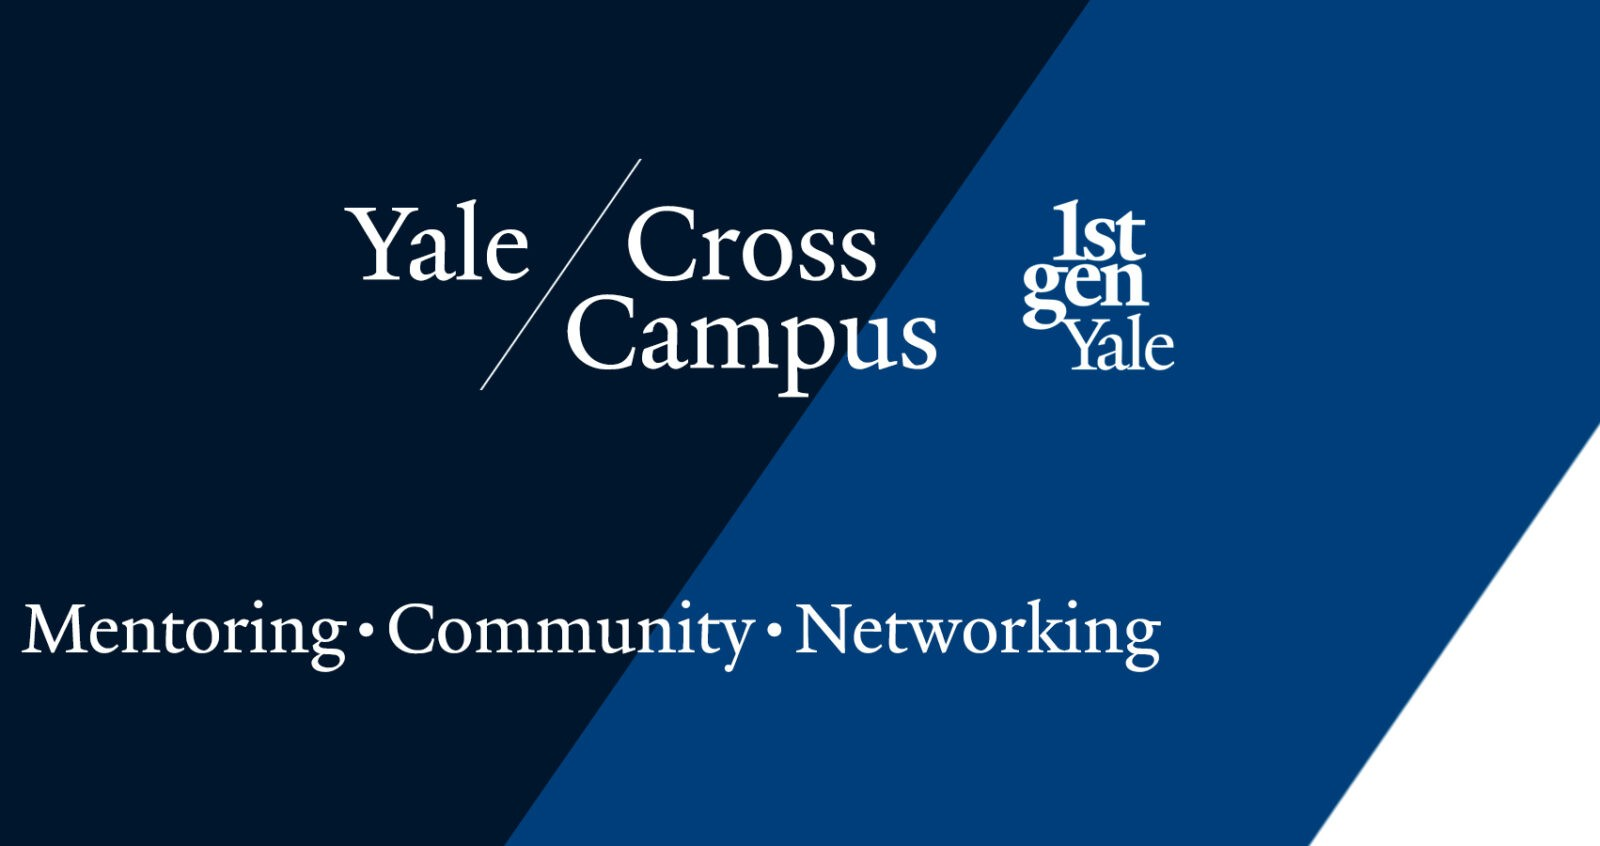 1stgenyaale on cross campus